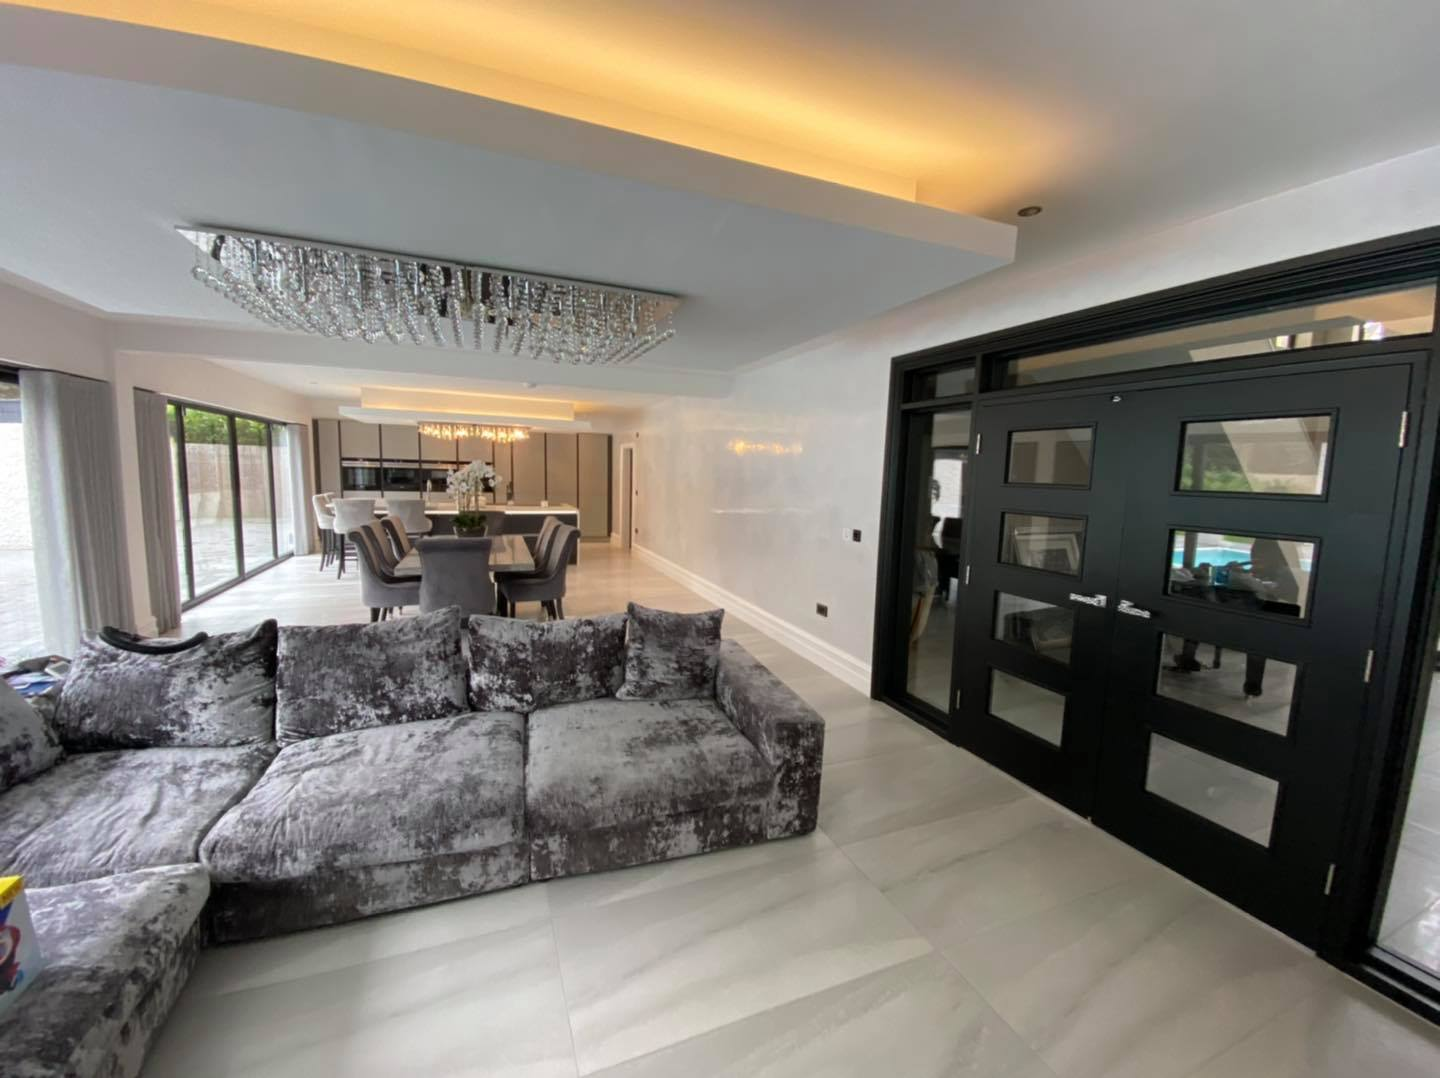 Venetian Plaster Cheshire - Luxury home interior design by Venetian Plastering North West